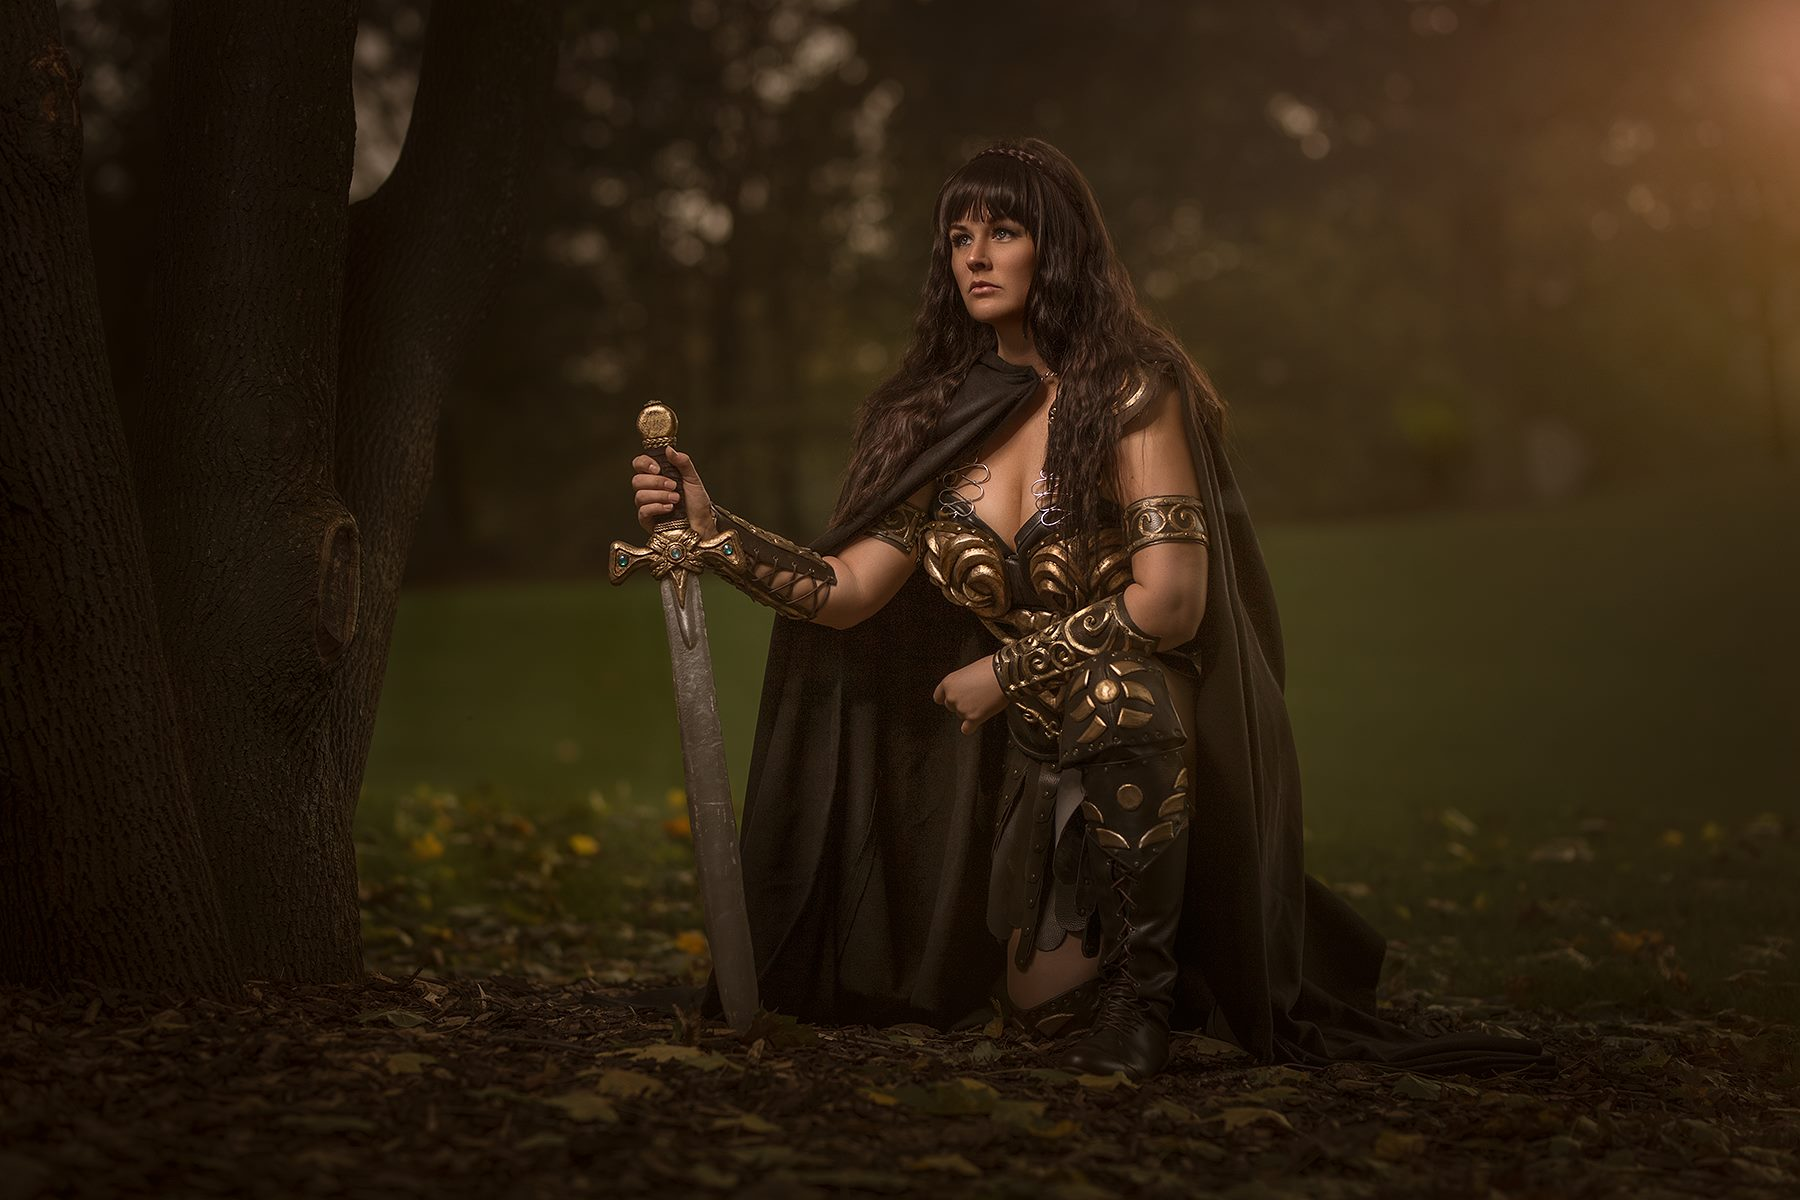 Arwenia looks ready to fight the forces of evil as a spitting image of Lucy Lawless' Xena: Warrior Princess in the following photoset.